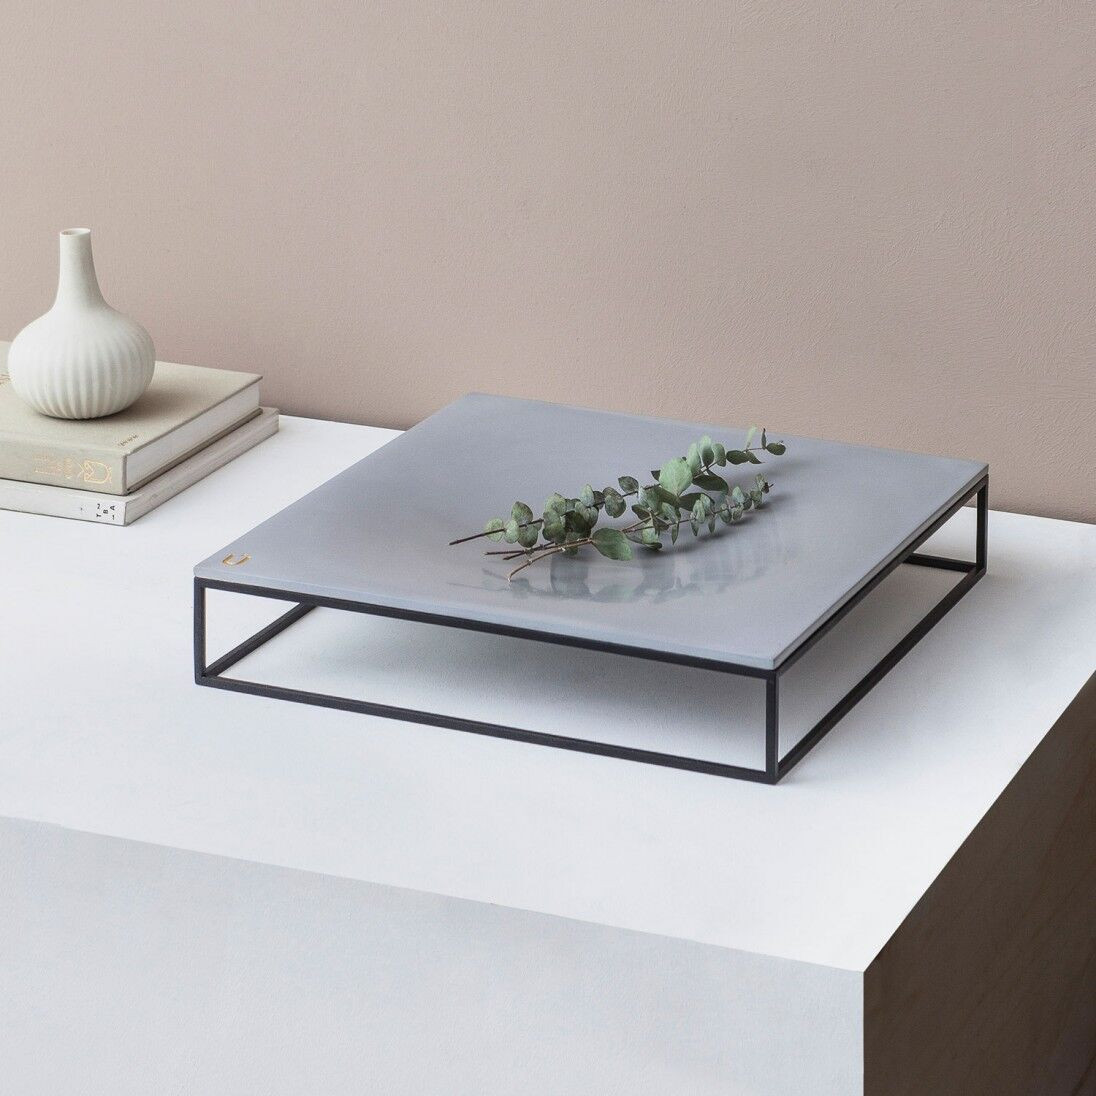 Mini MoonSquare Side Table   Black Steel Frame / Grey Table Top